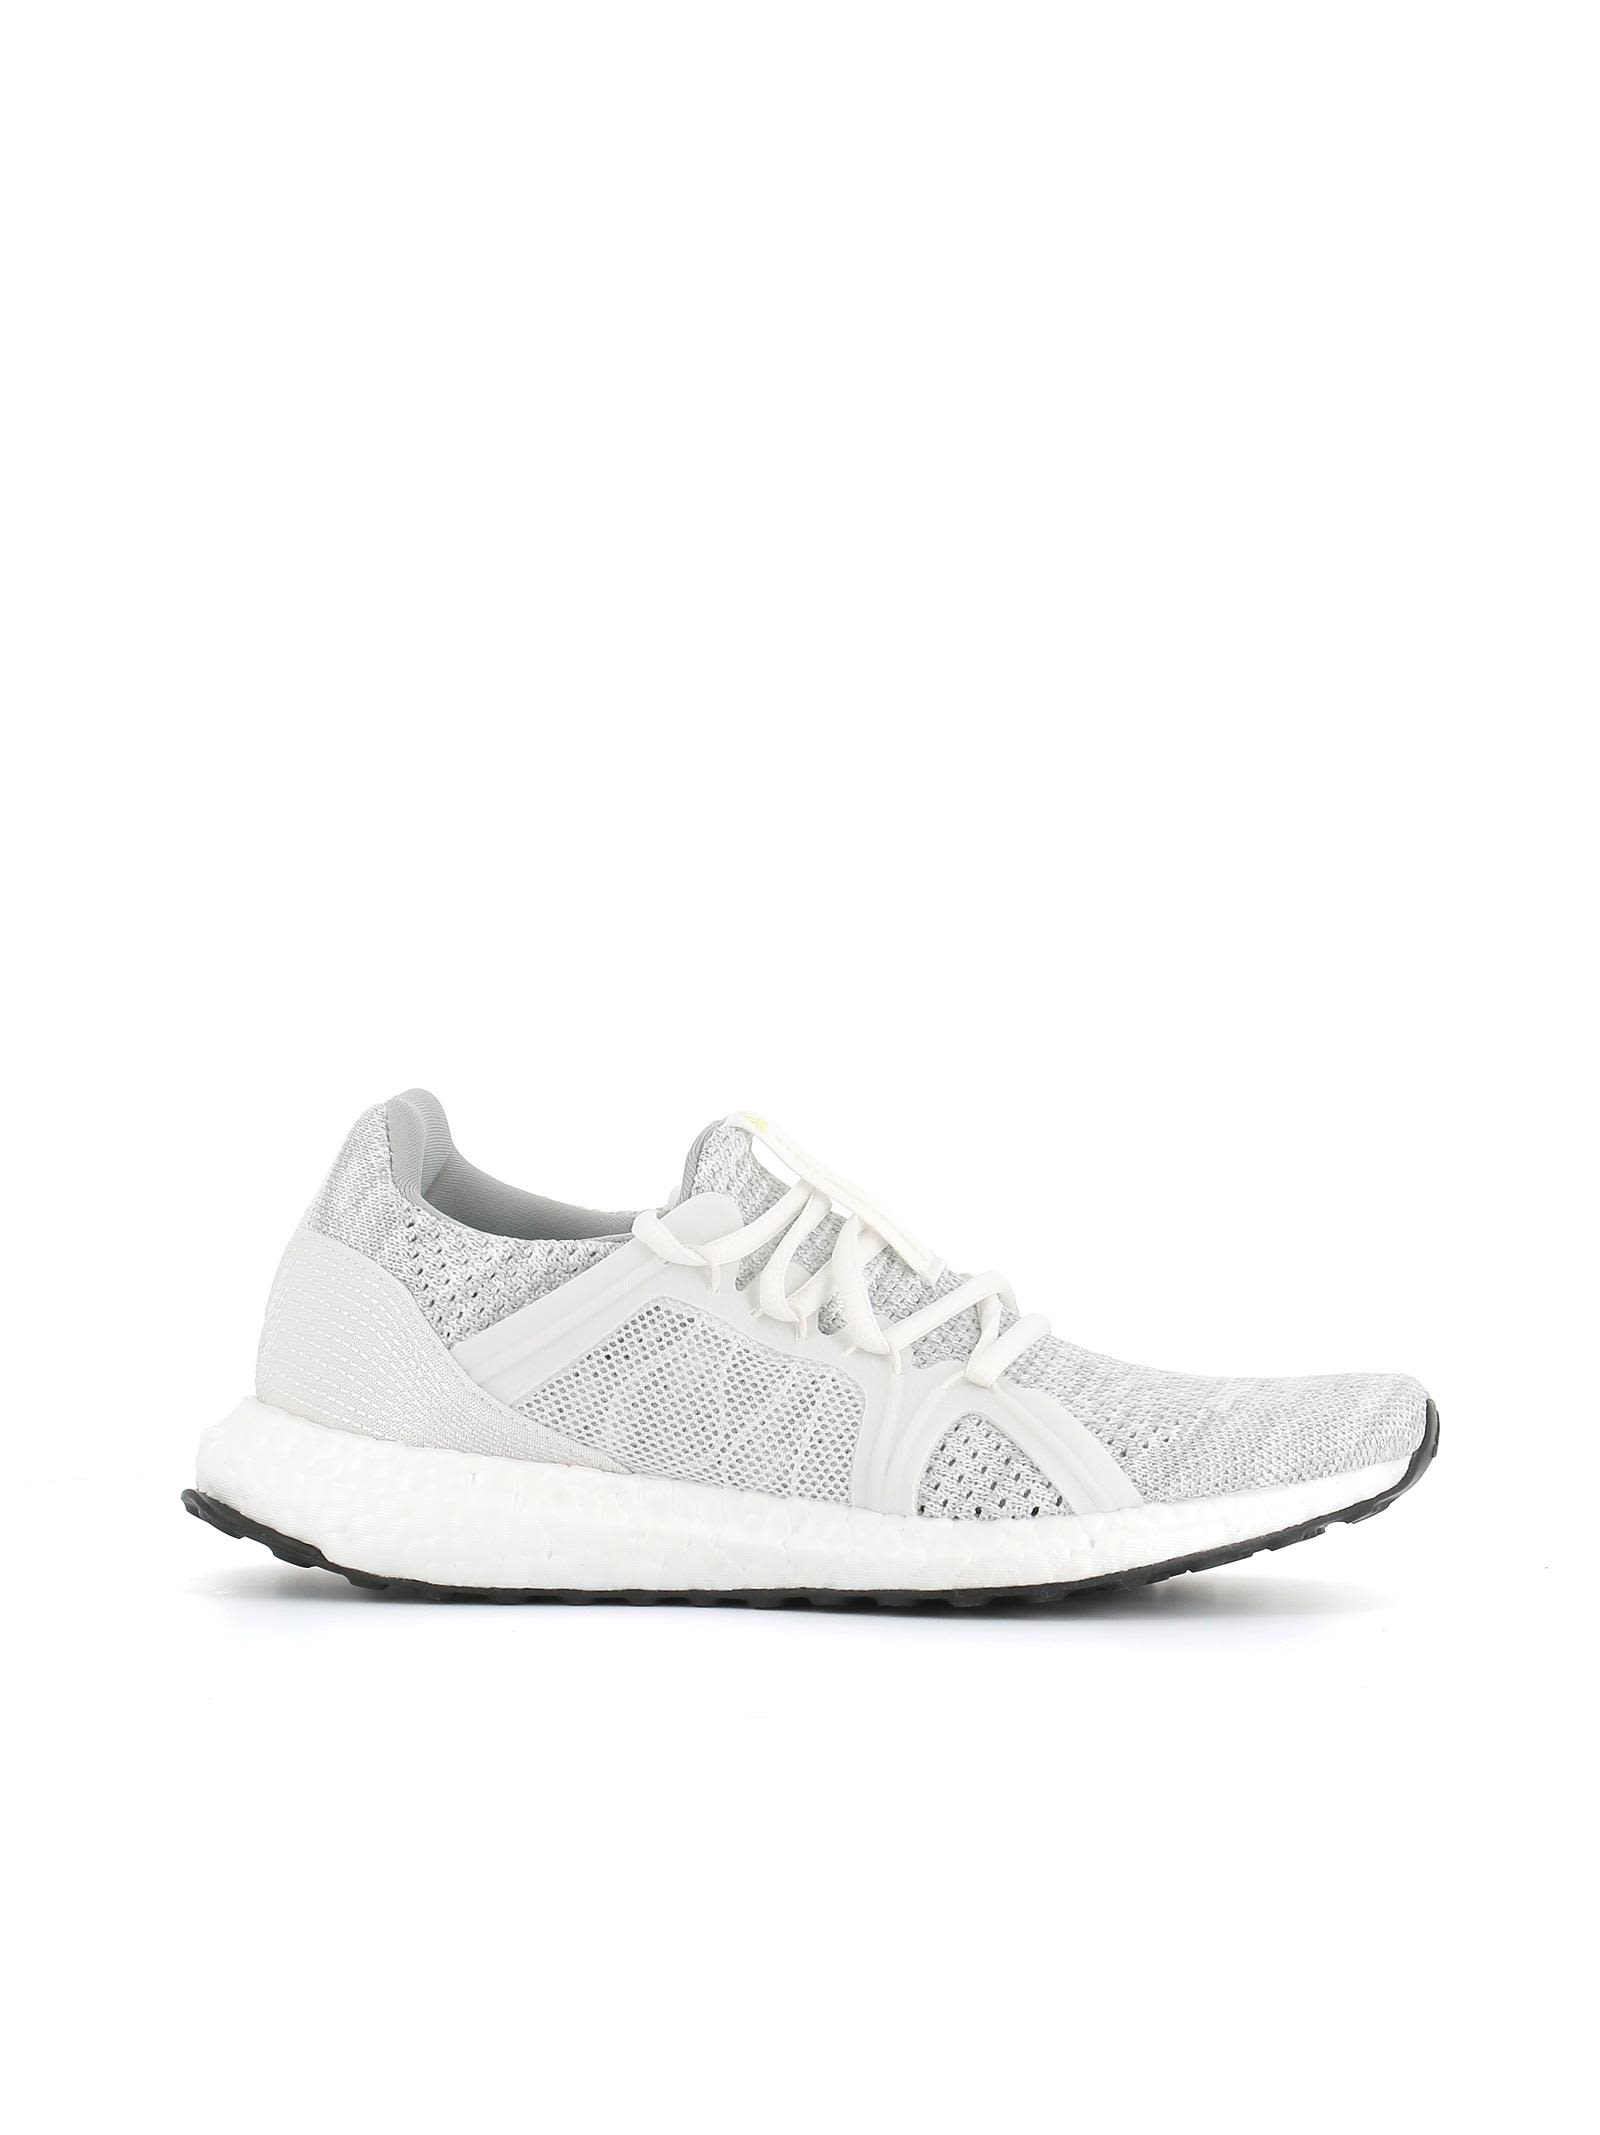 Adidas By Stella Mccartney White Synthetic ultra Boost Parley